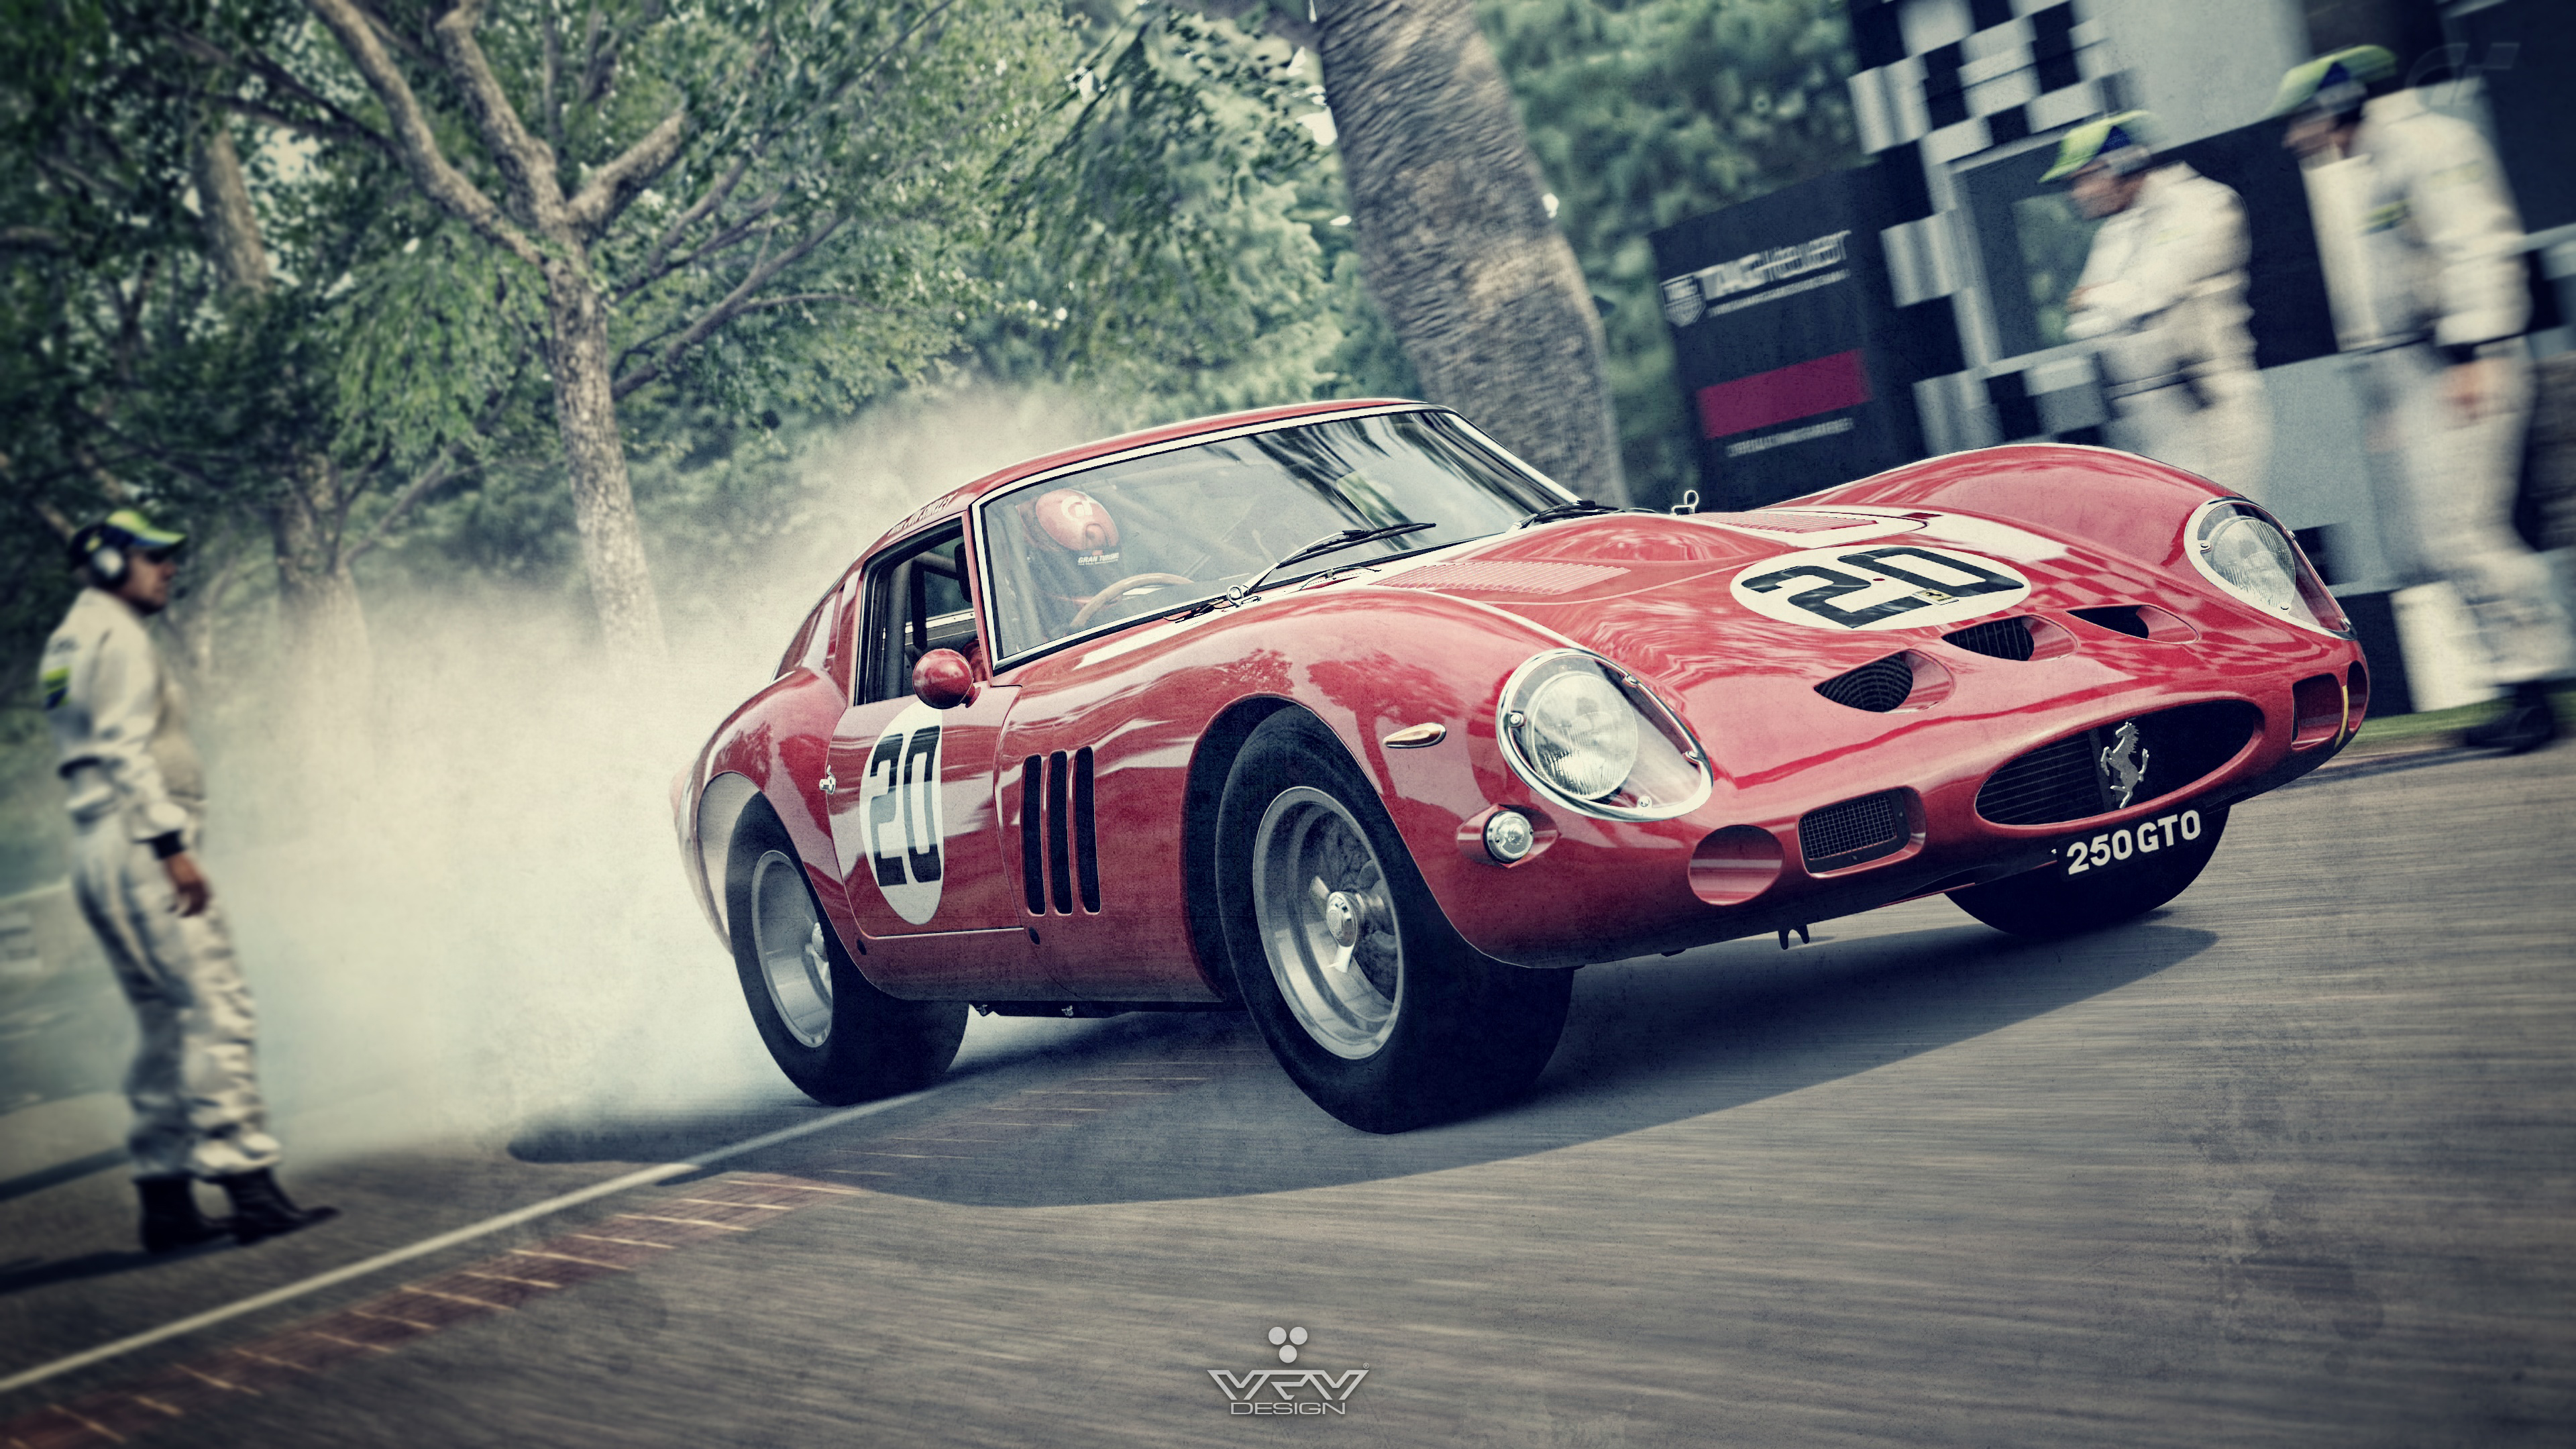 ferrari 250 desktop wallpaper - photo #29